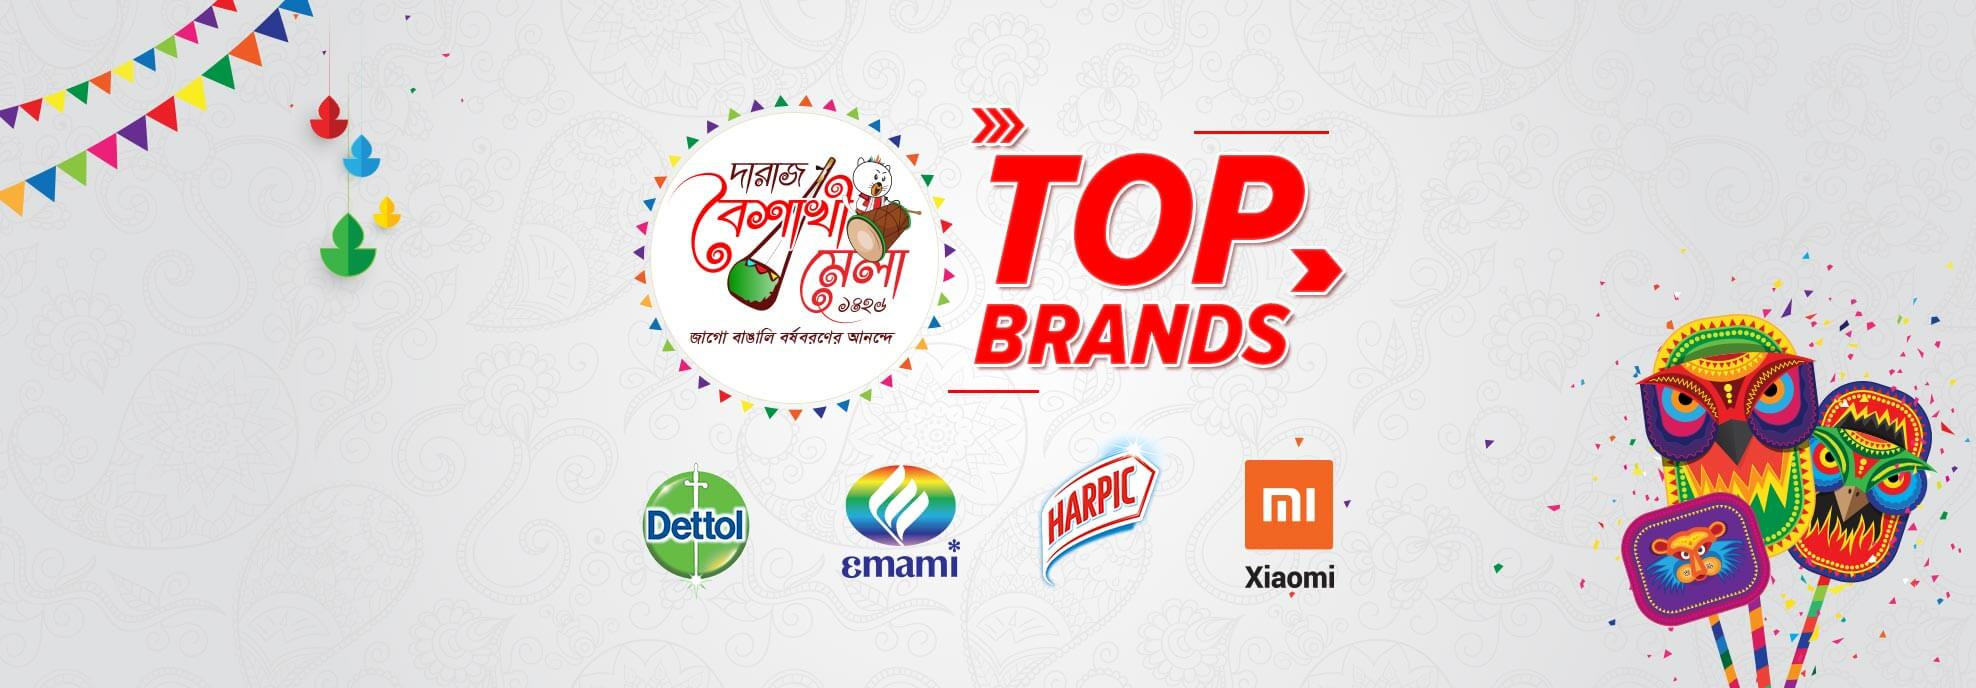 Daraz Top Brands